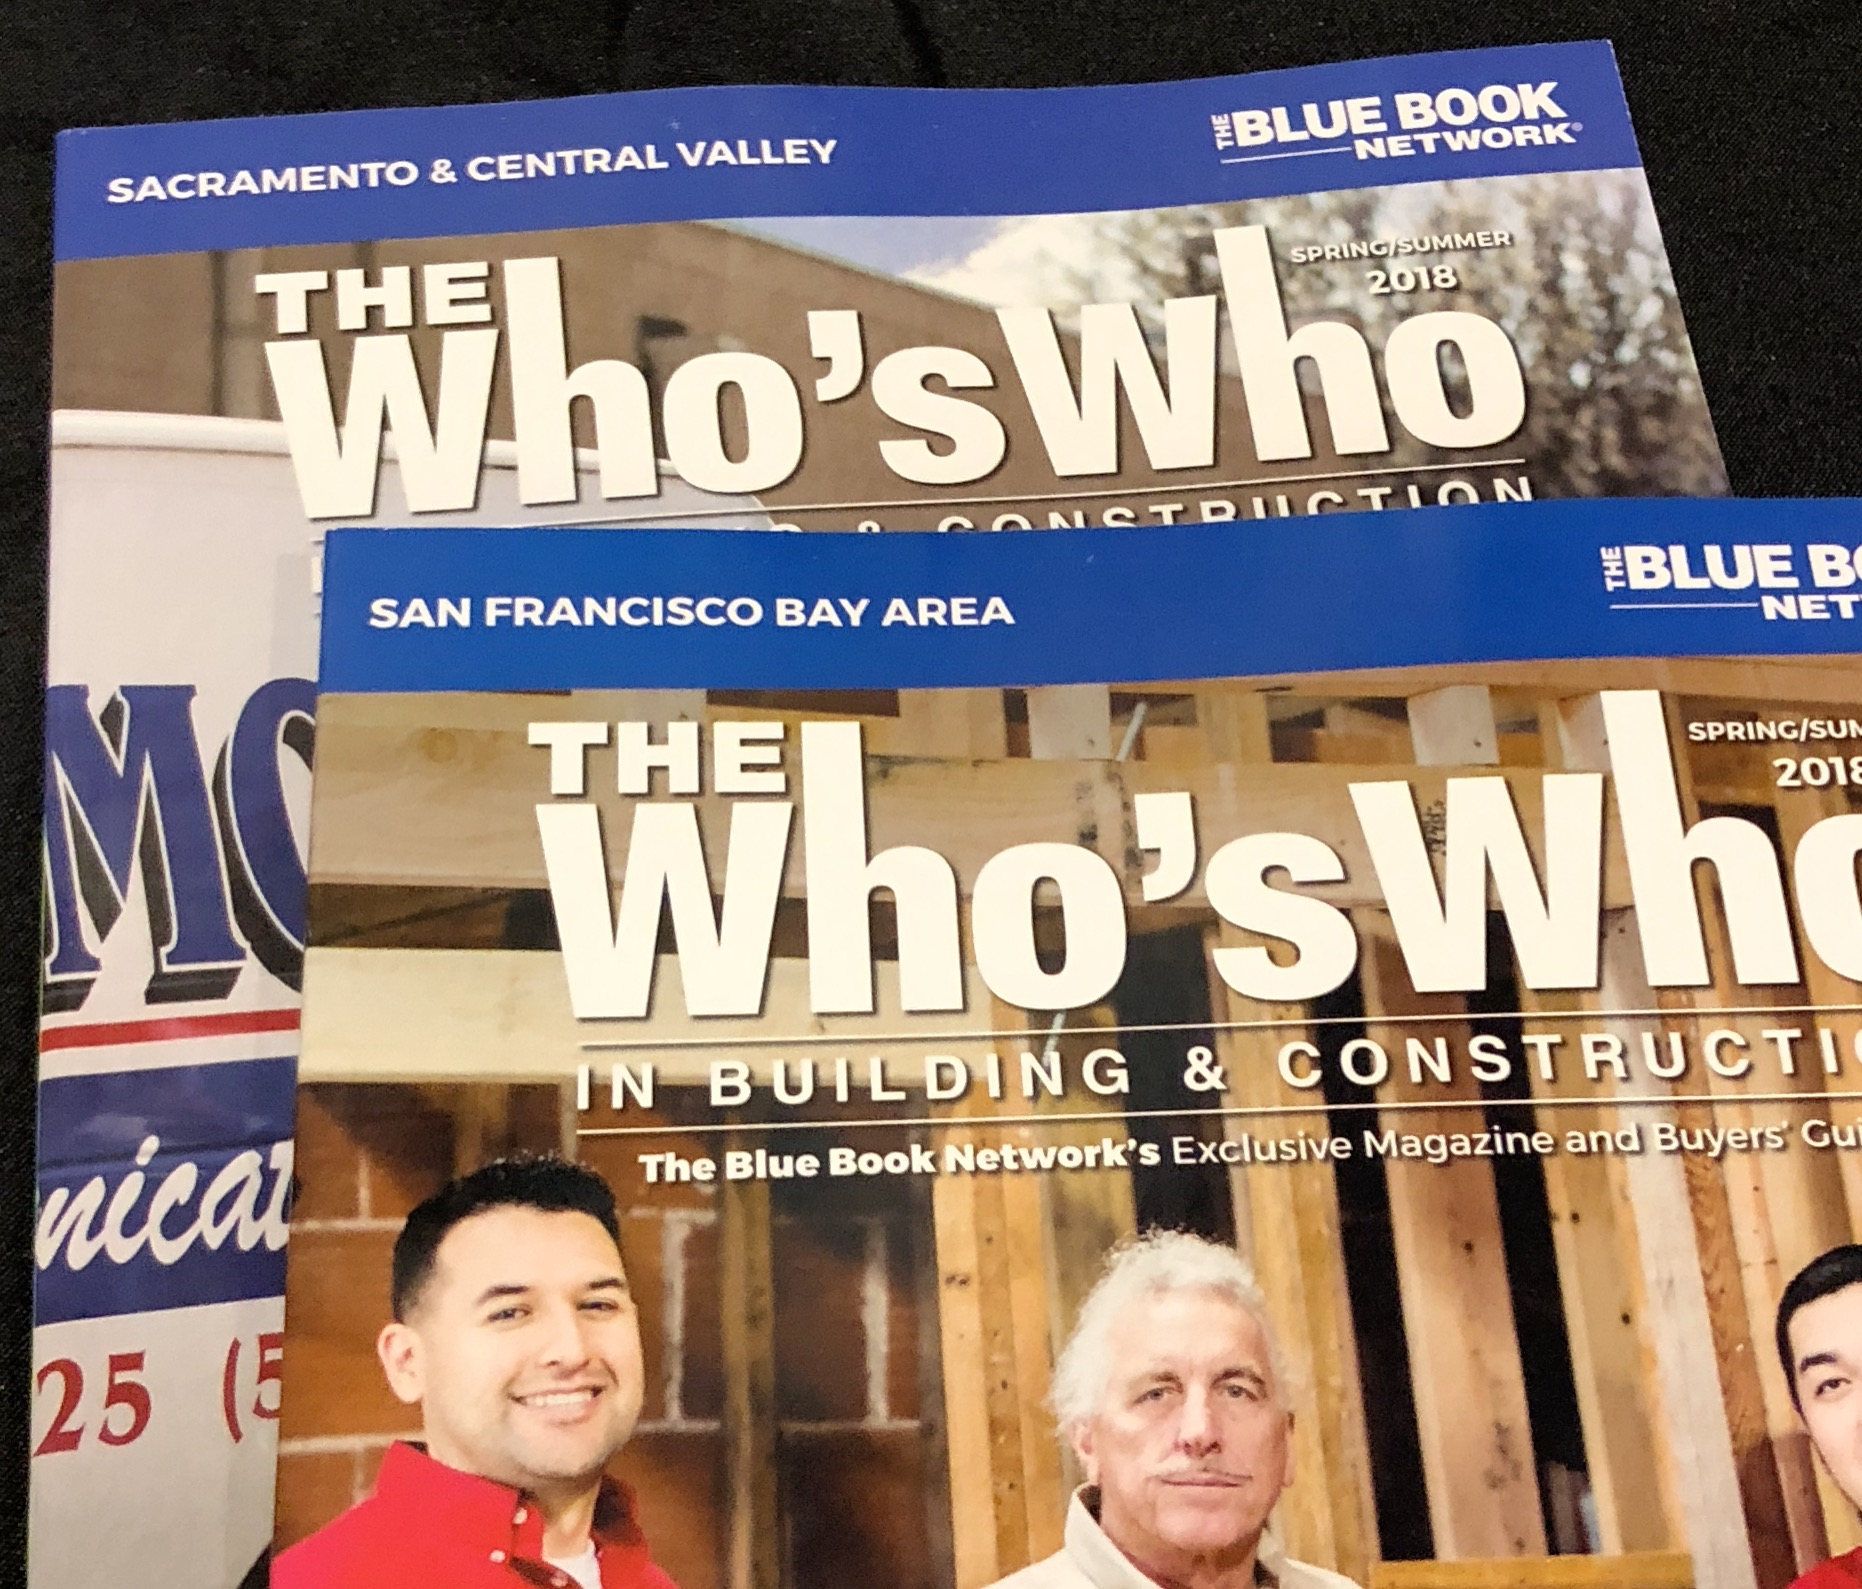 magazines provided by the blue book network at the who's who showcase for the networking event